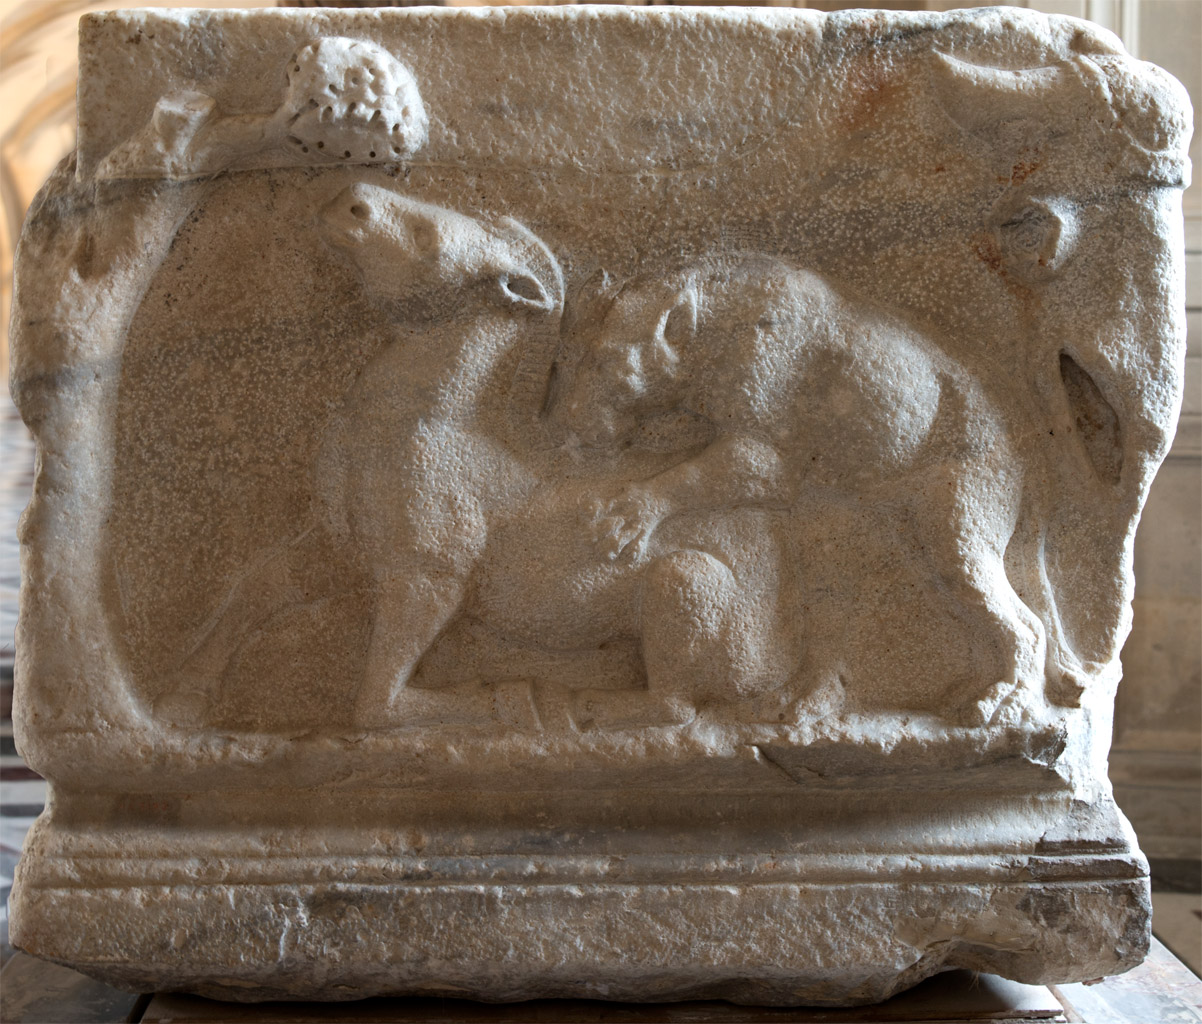 Sarcophagus with a myth of Selene and Endymion (left-side panel). Marble. Mid-2nd cent. CE. Asia Minor production (region of Smyrna). Inv. No. Ma 1384. Paris, Louvre Museum